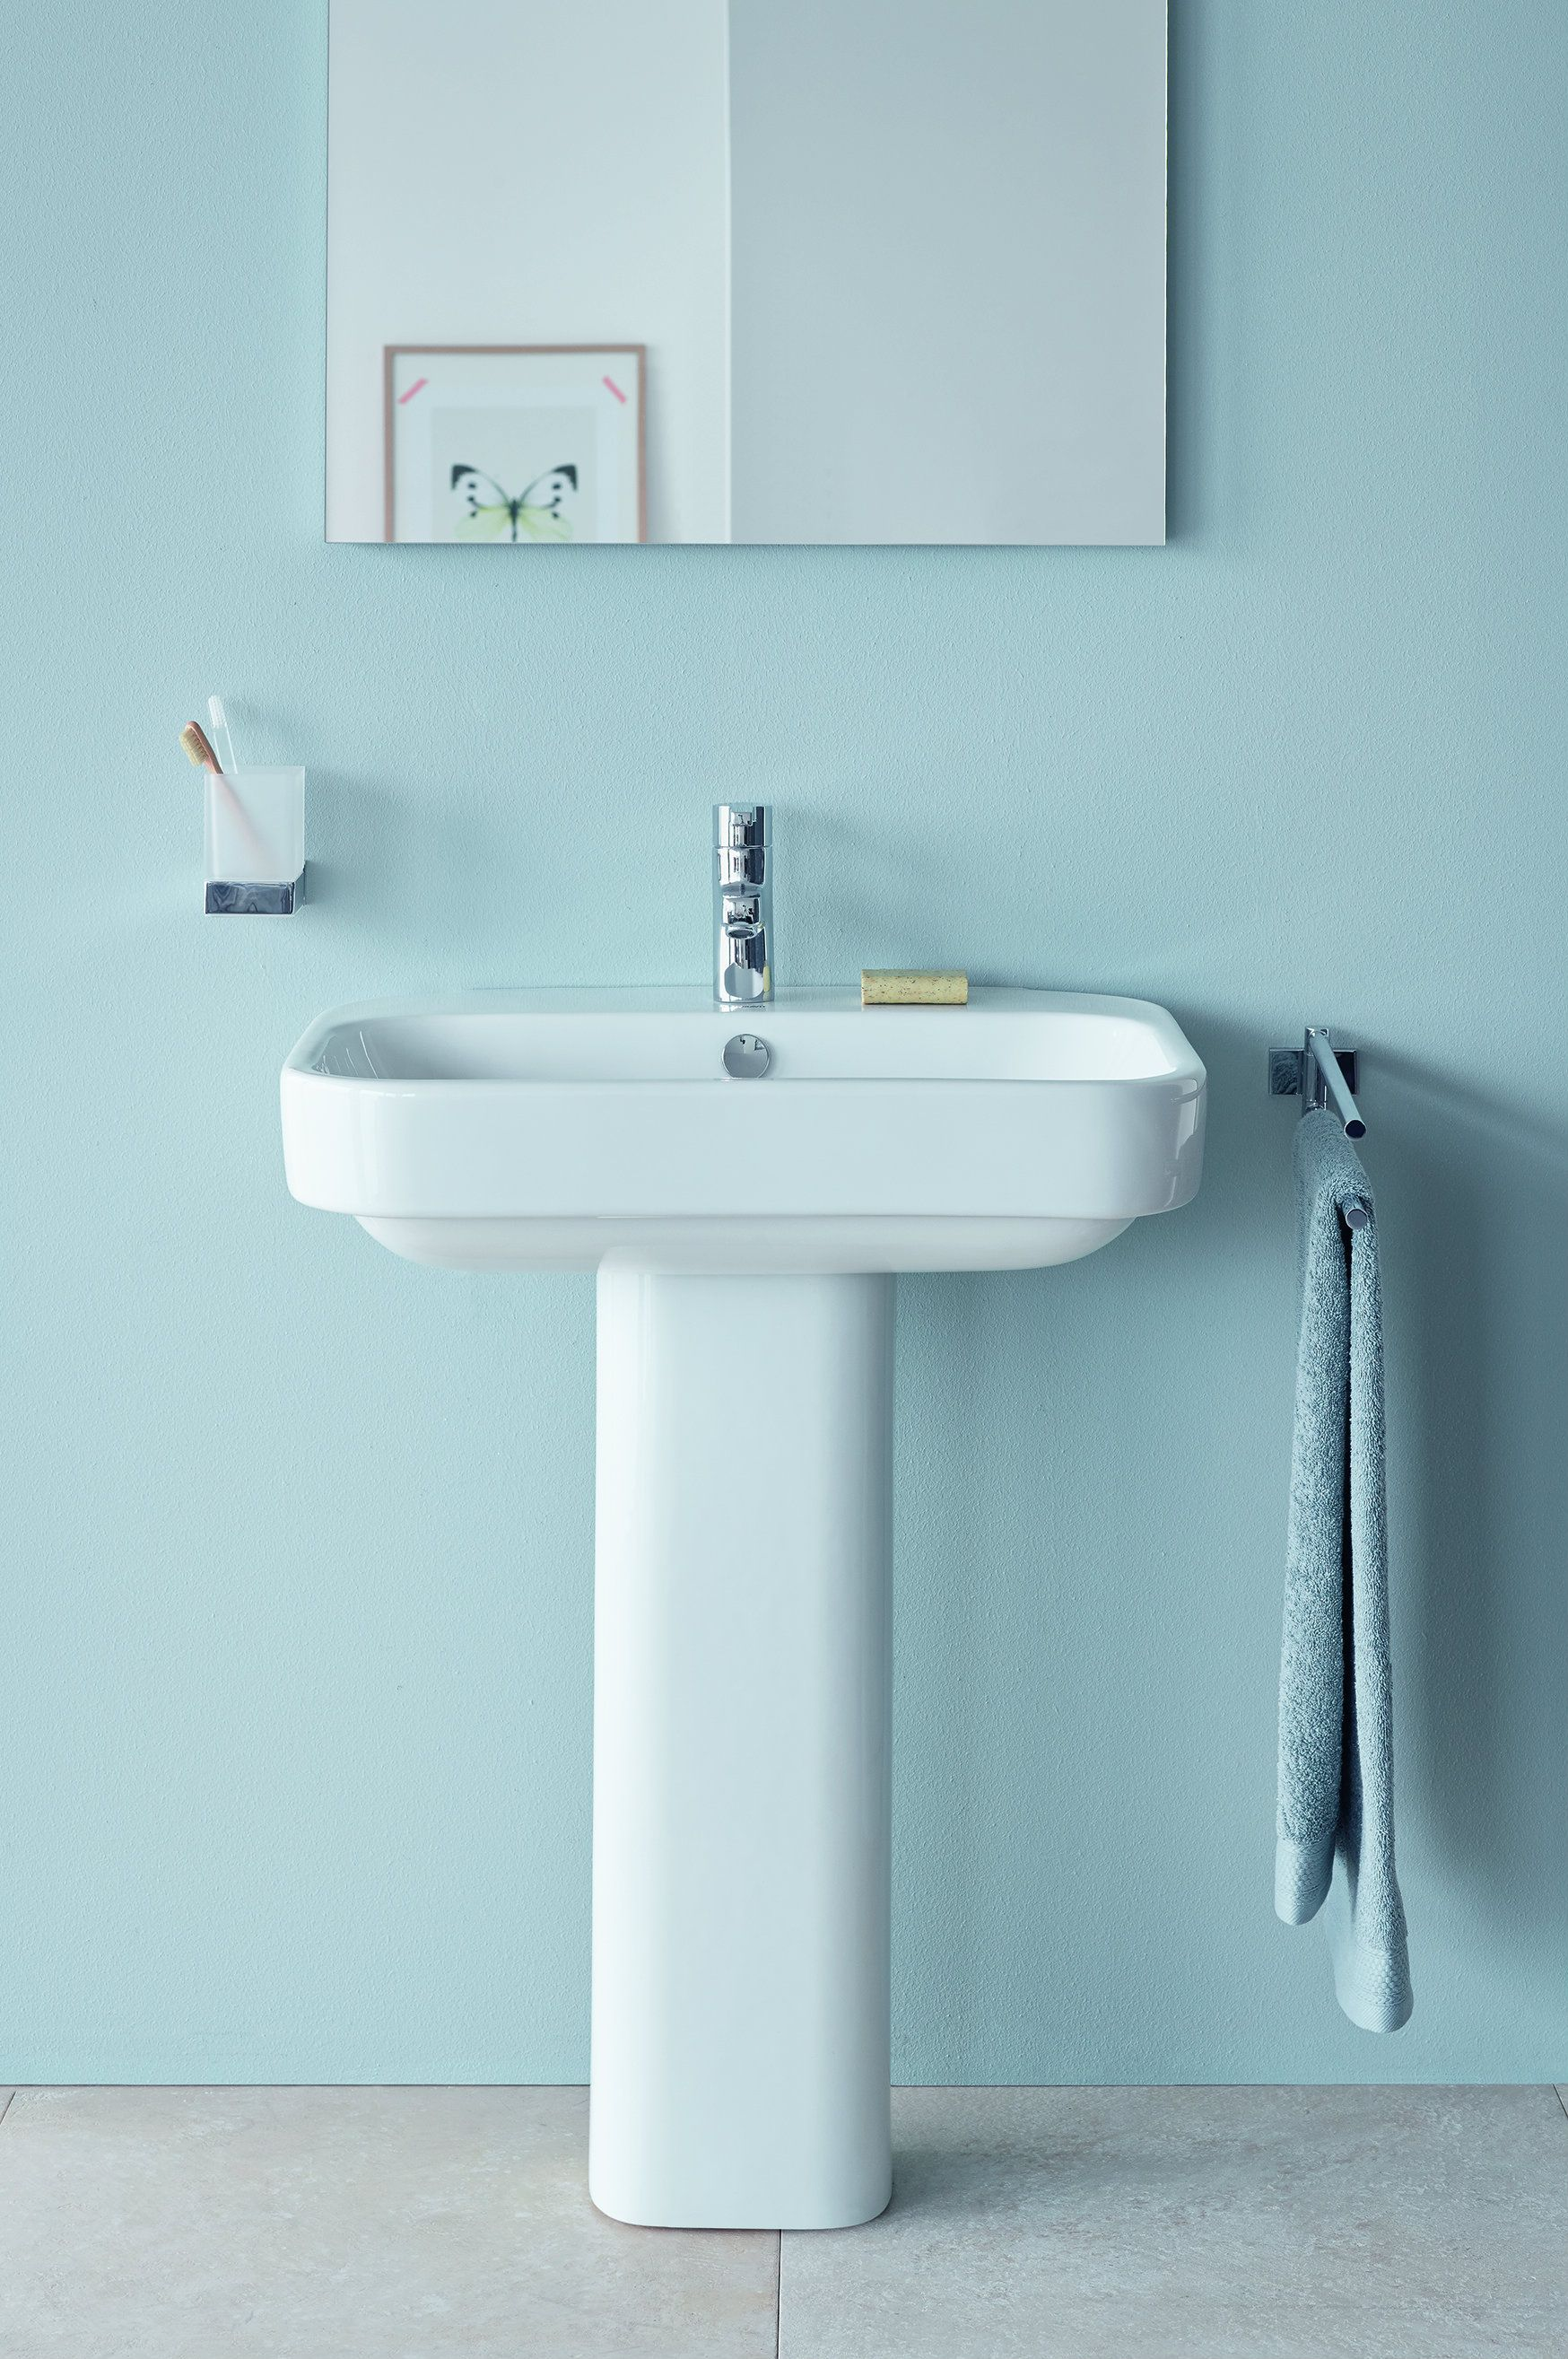 Happy D 2 Basin And Pedestal Happy D2 Basin Duravit With Taps